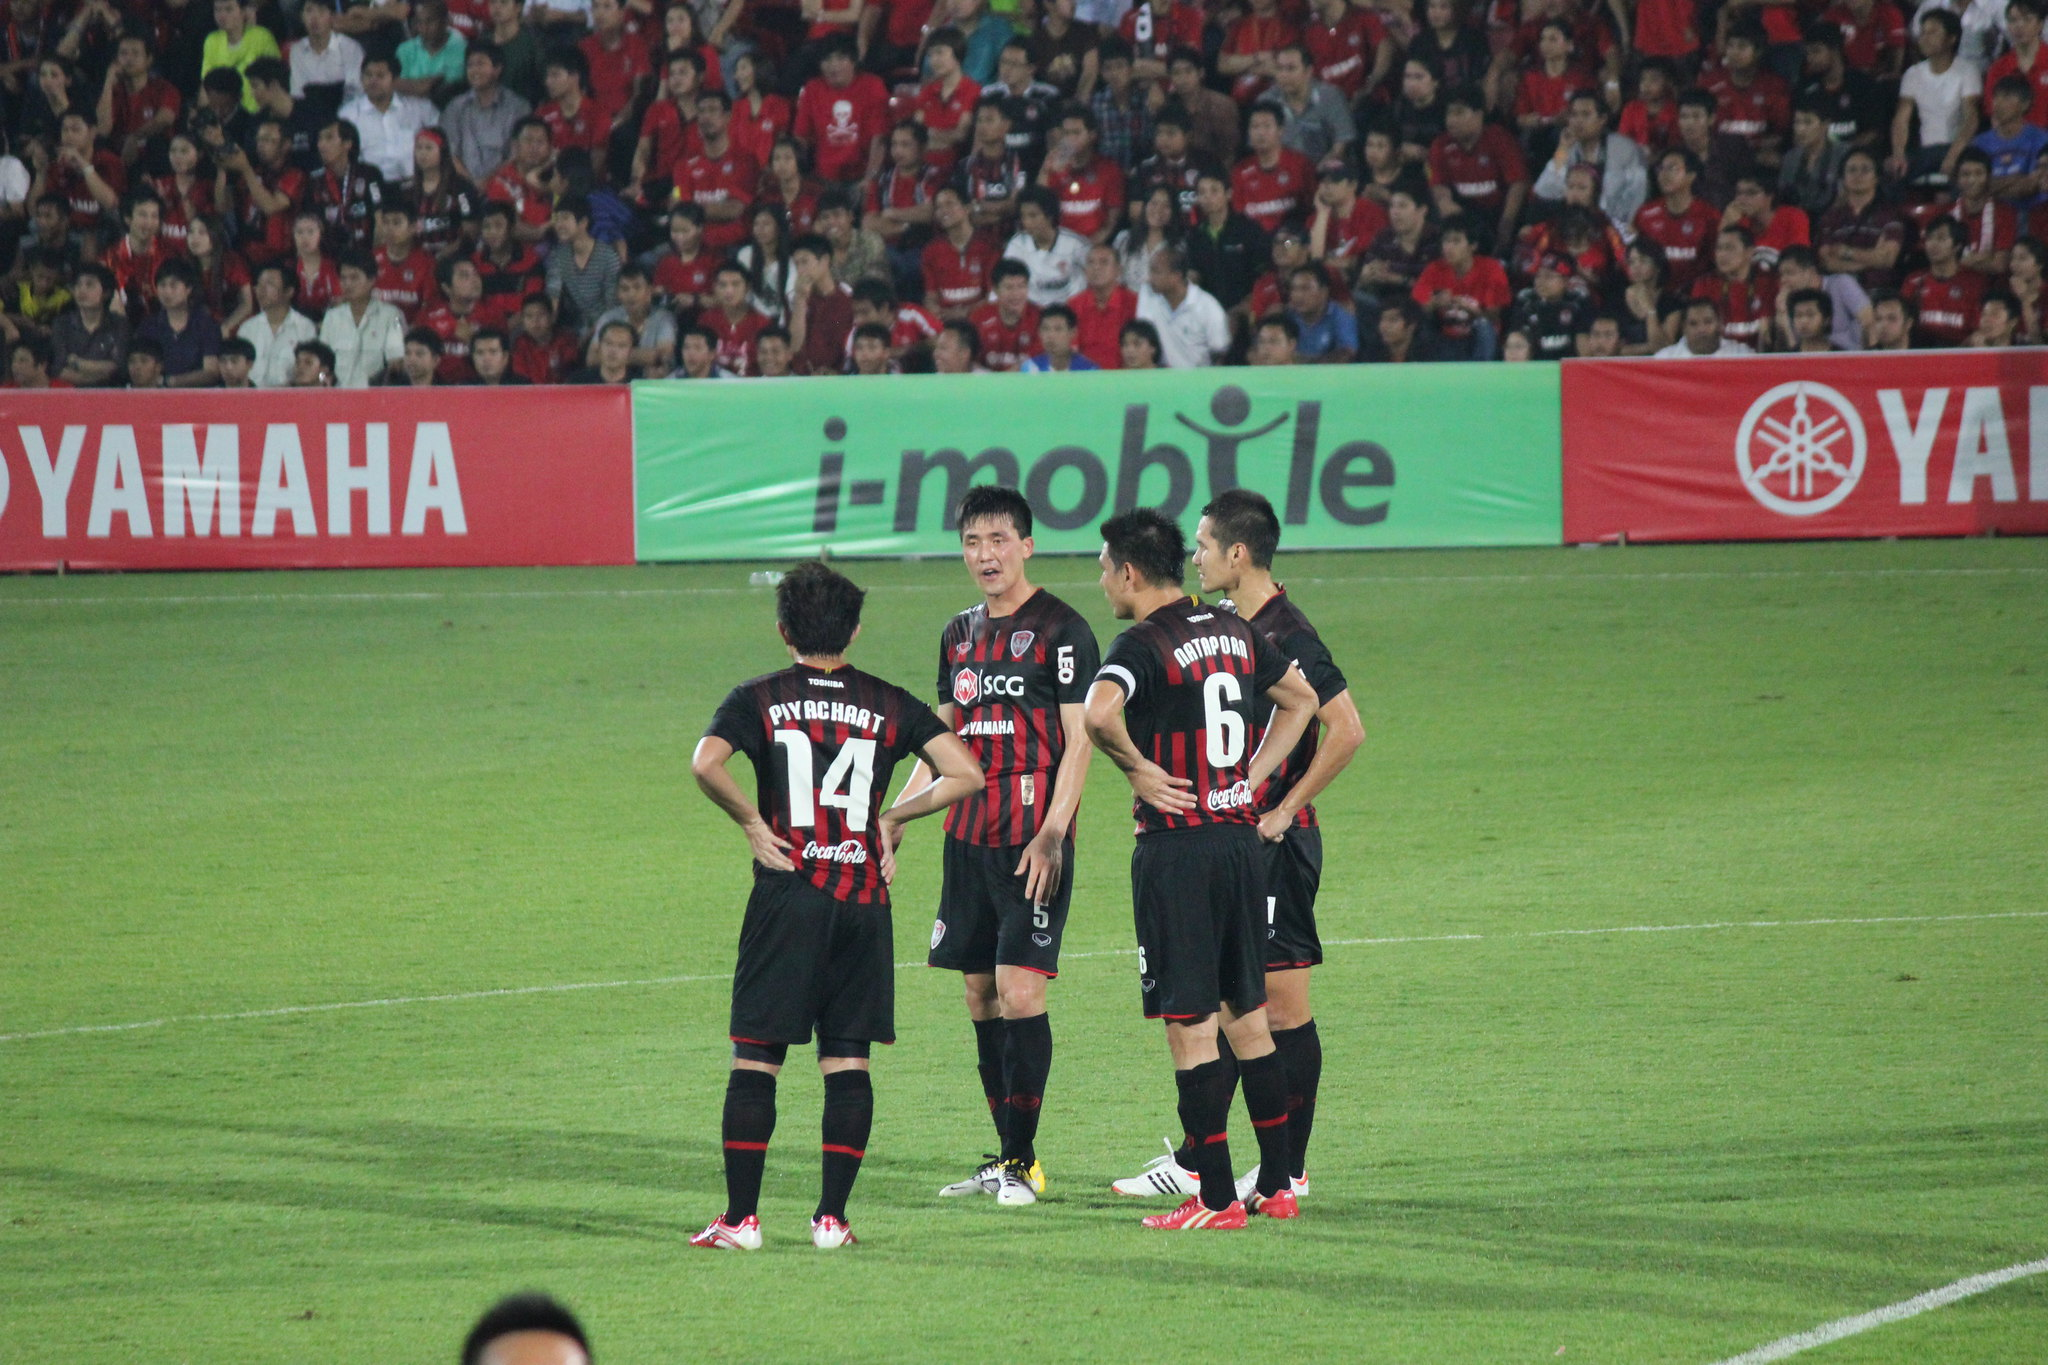 Muangthong United players on the pitch.